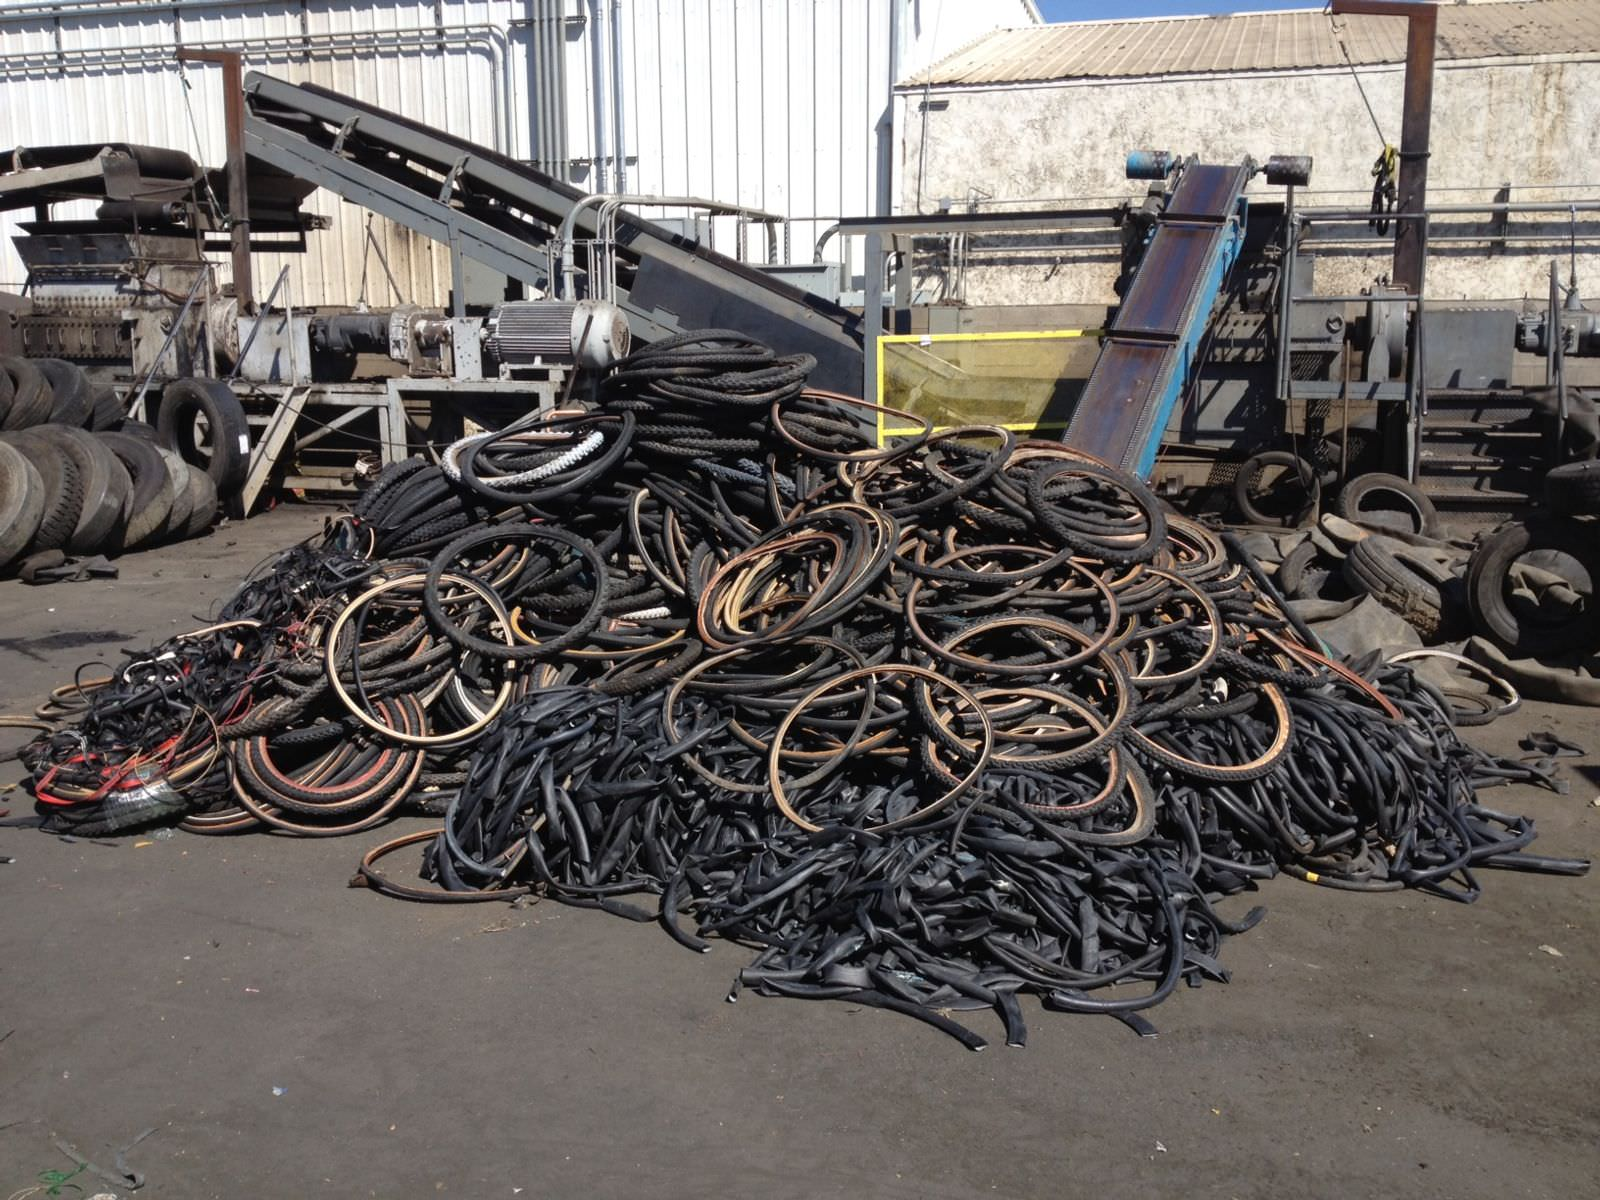 Rottua Sandals Tire Collection Pile